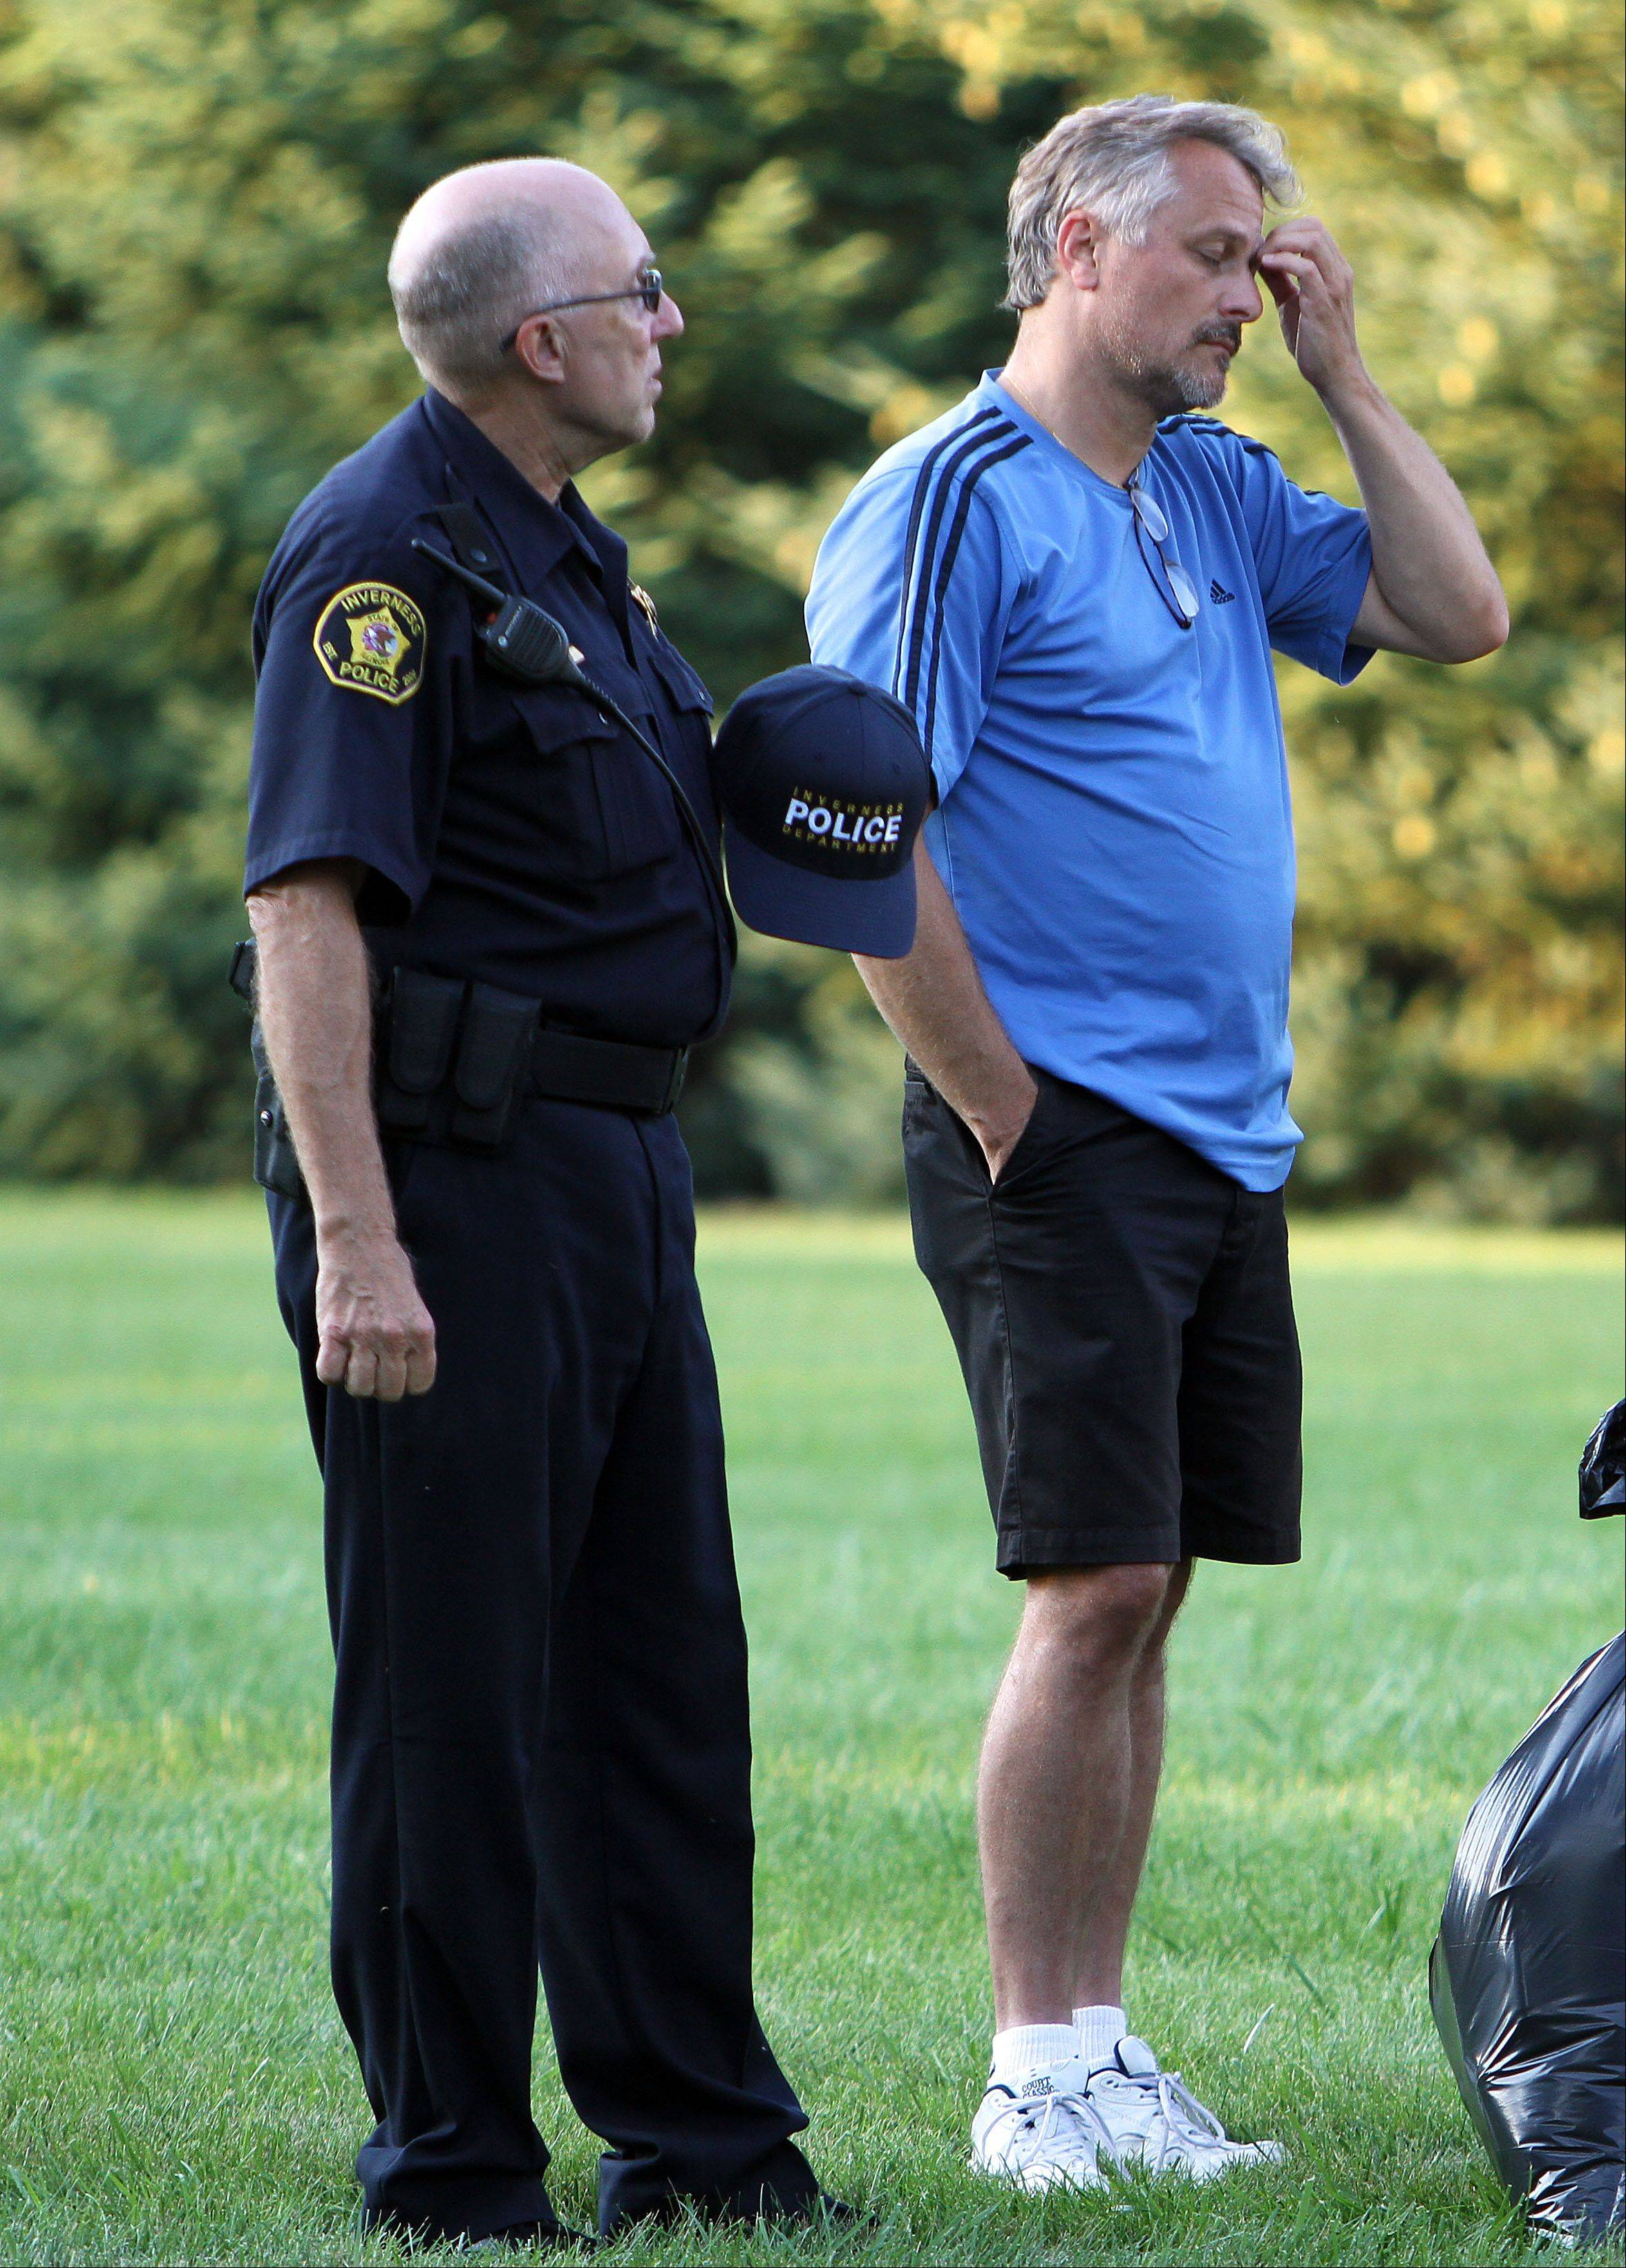 Inverness police officer Wes Gustafson, left, talks with homeowner Per Caesius as firefighters work to put out a fire that destroyed his home on Carnoustie Lane in Inverness Tuesday evening.